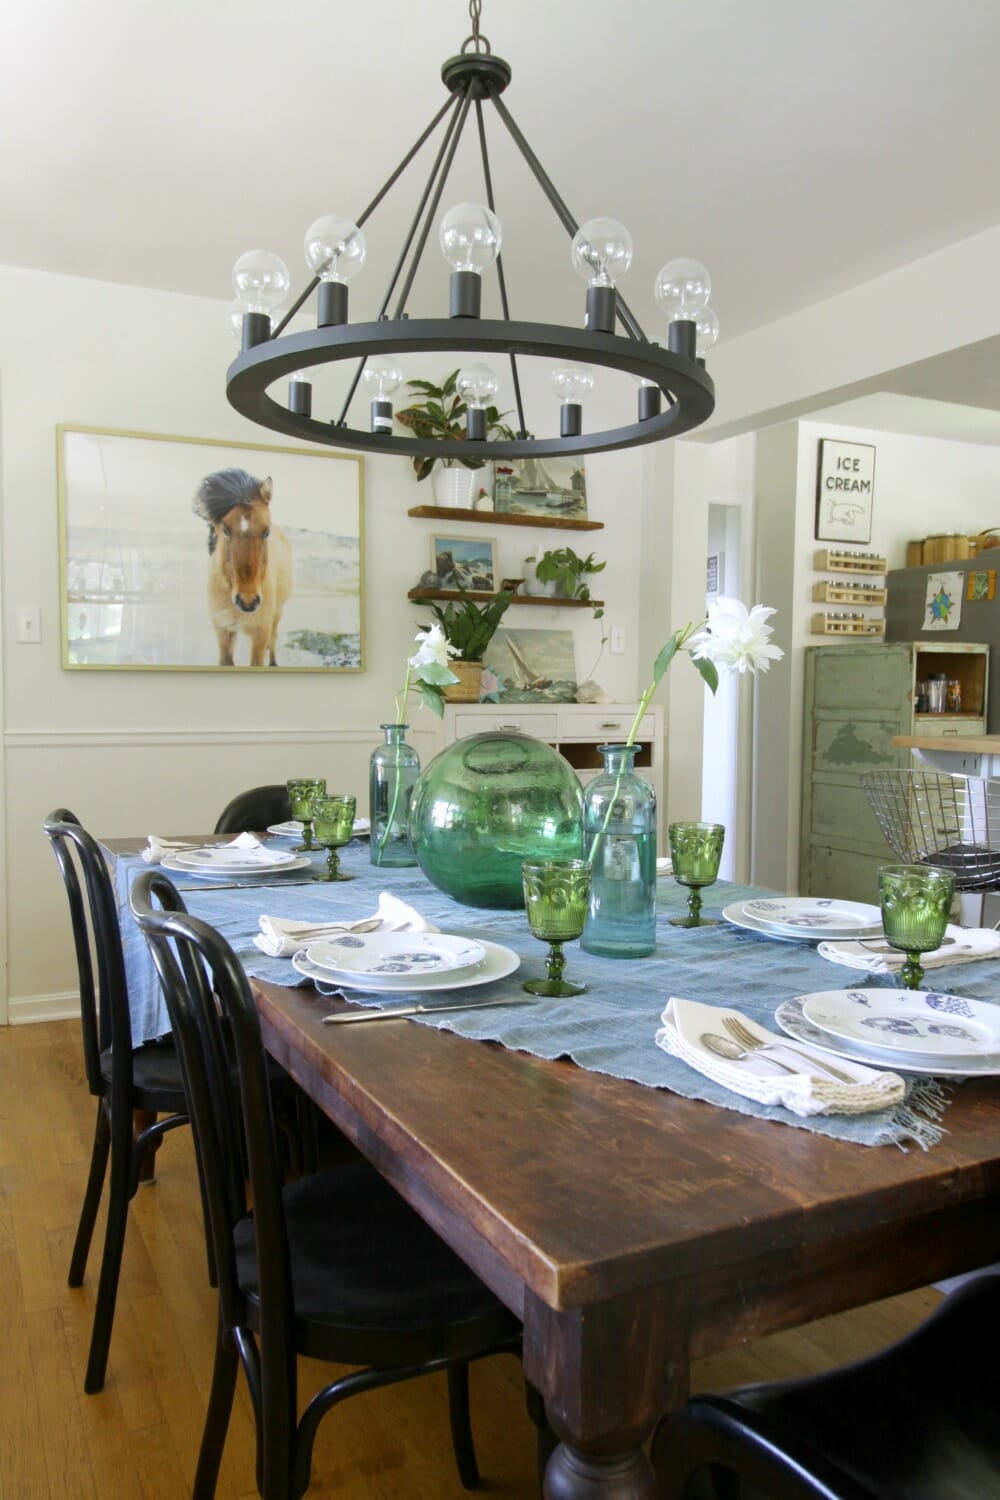 Eclectic Summer Kitchen And Dining Room Tour Cassie